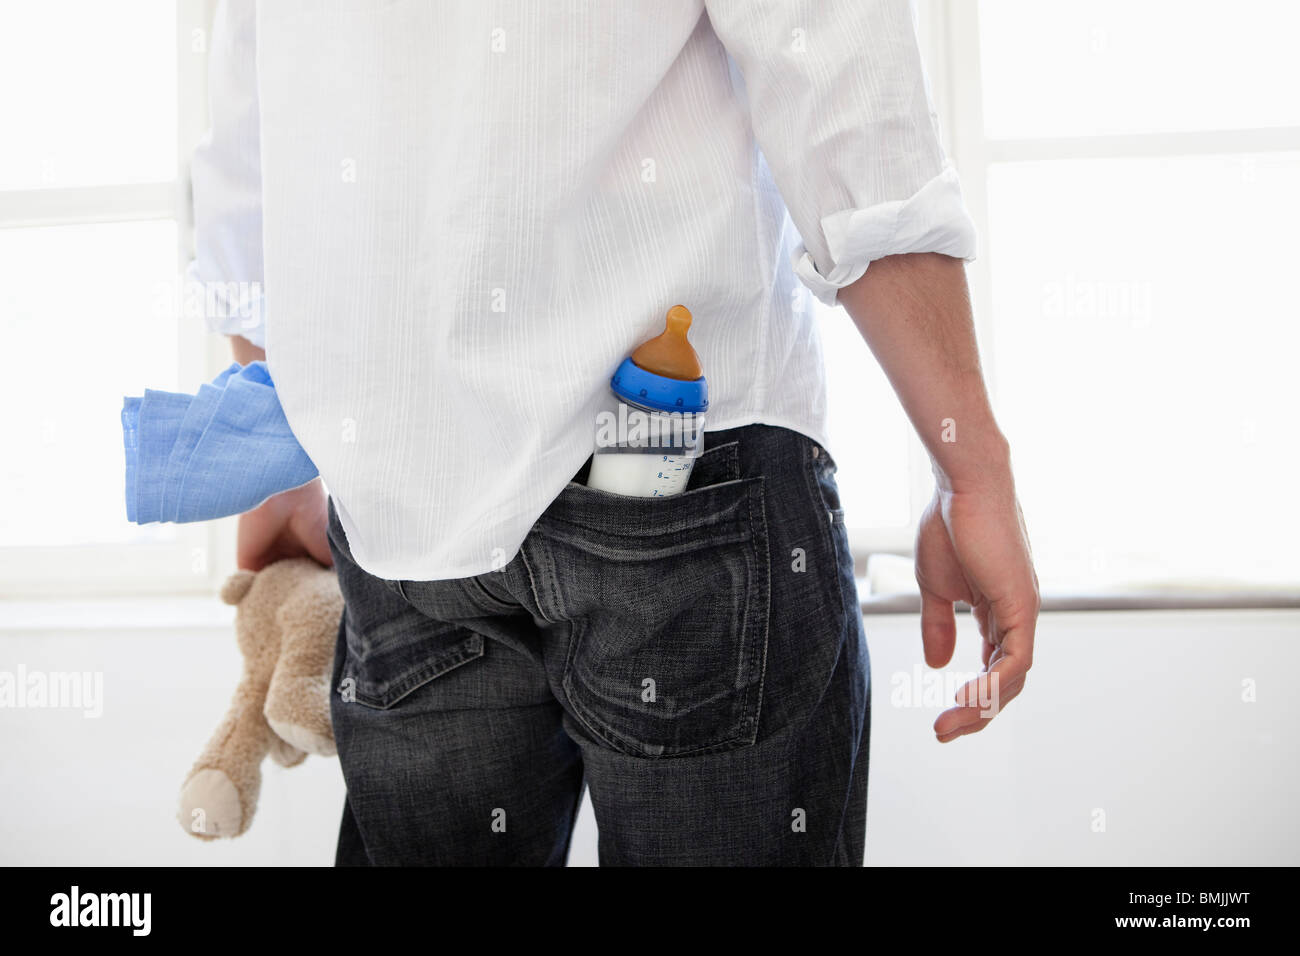 Man having baby-things in his pockets - Stock Image